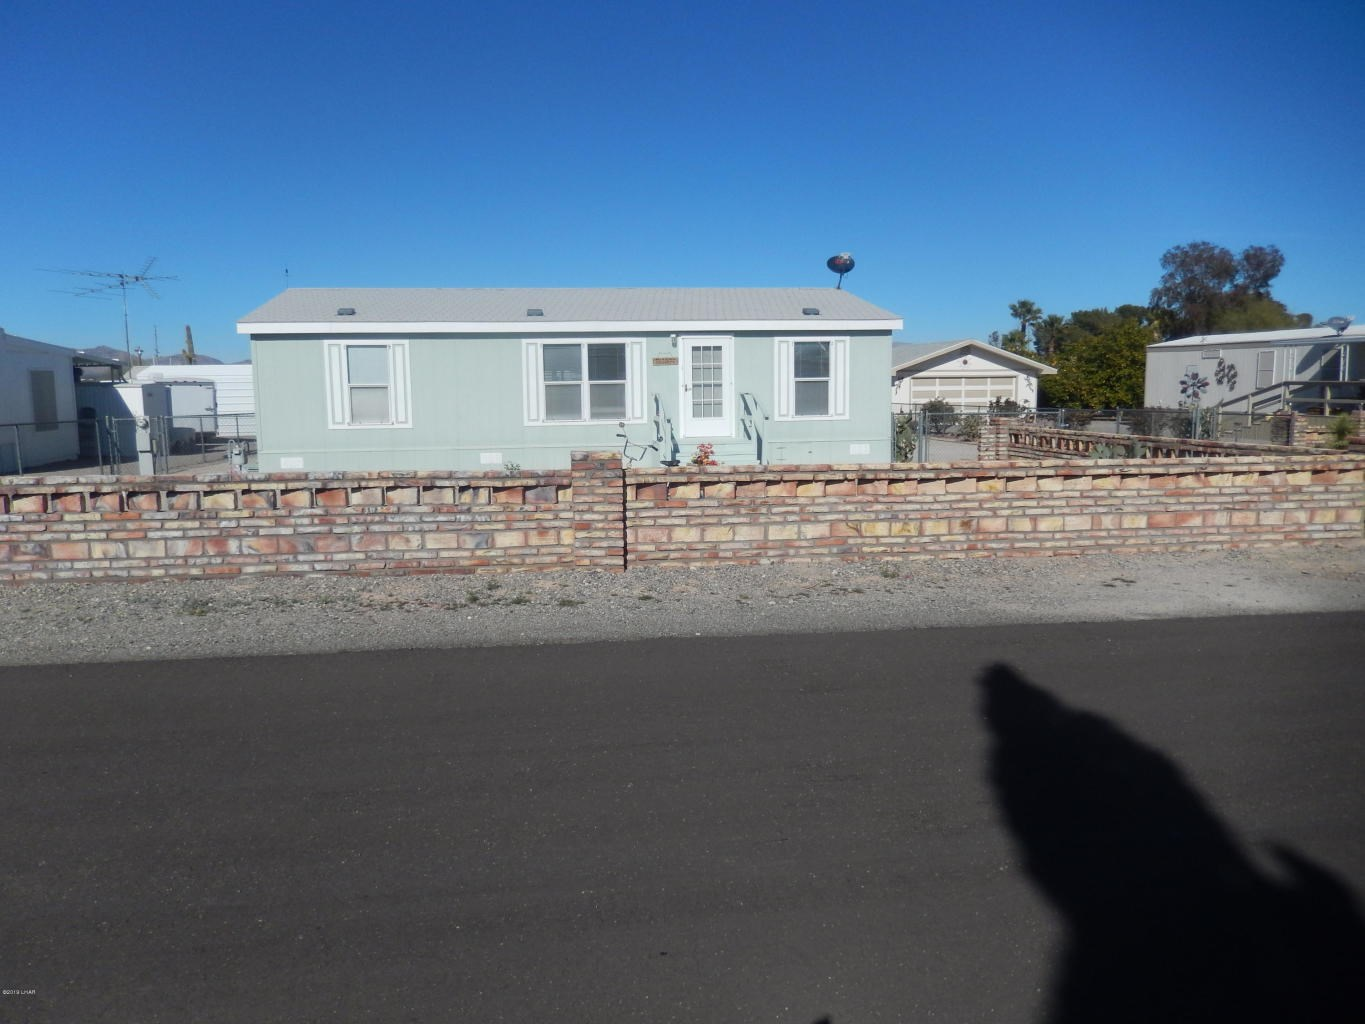 Salome, AZ Home For Sale Manufactured Home Fenced Yard RV sp